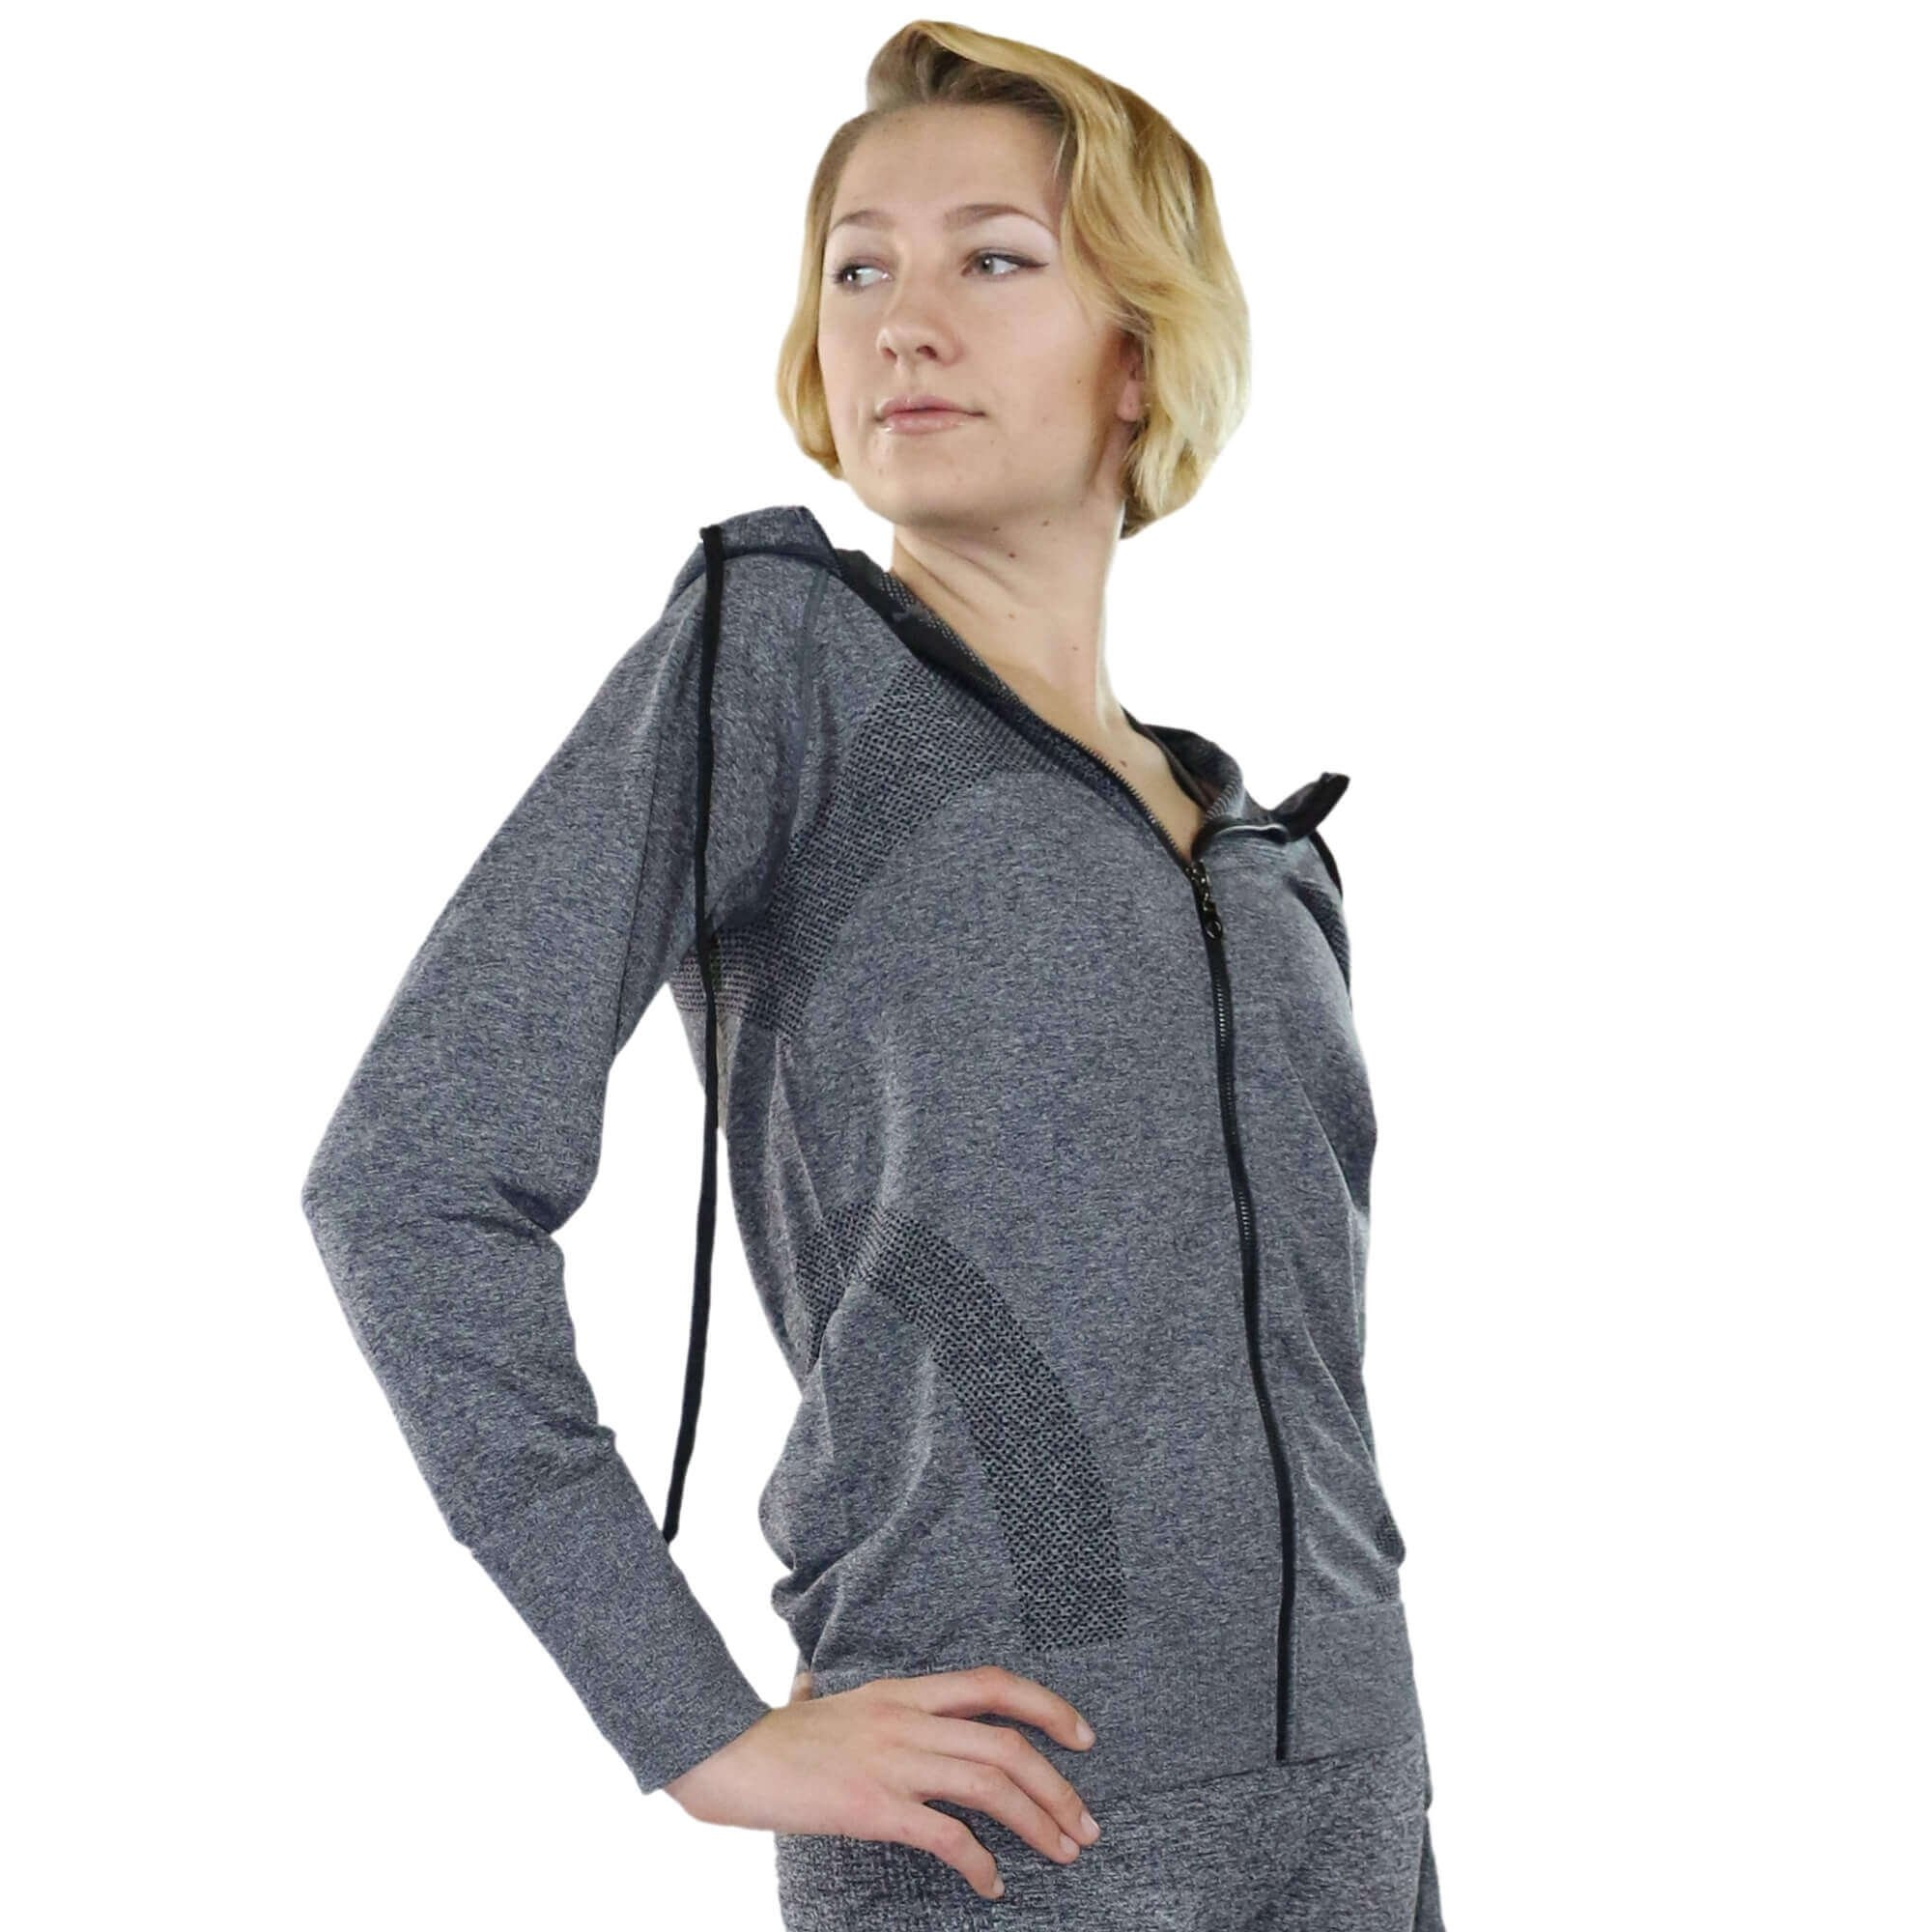 Fitcue Women's Full Zip Workout Hoodie - Click Image to Close